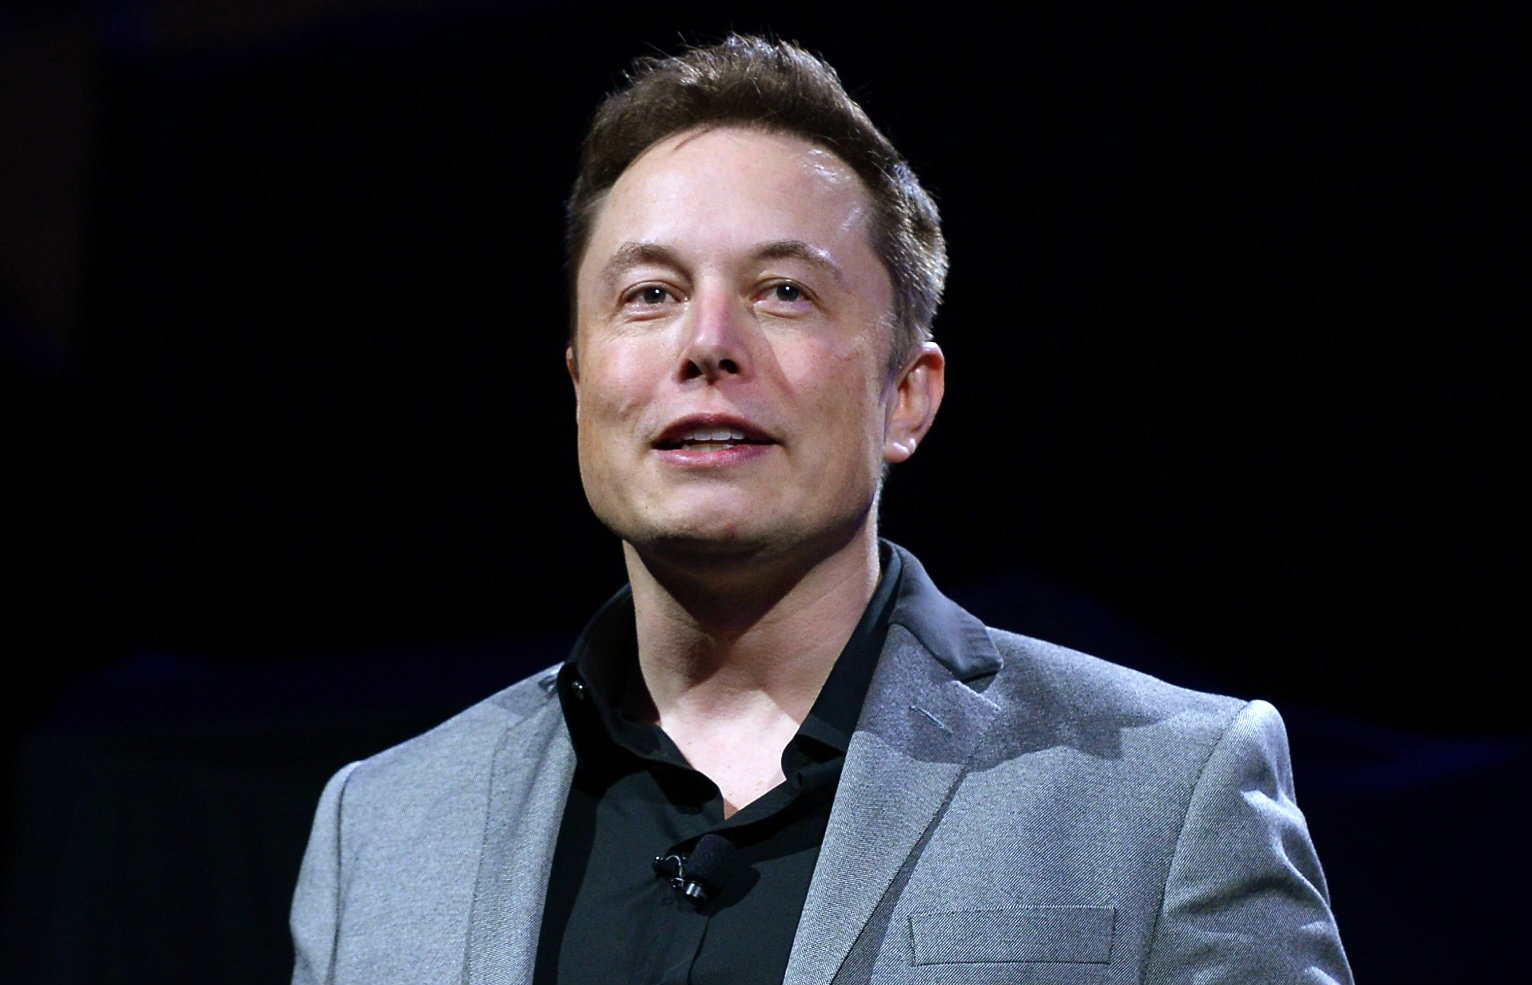 How Tesla impacts the future of Electric cars? HalfofThe